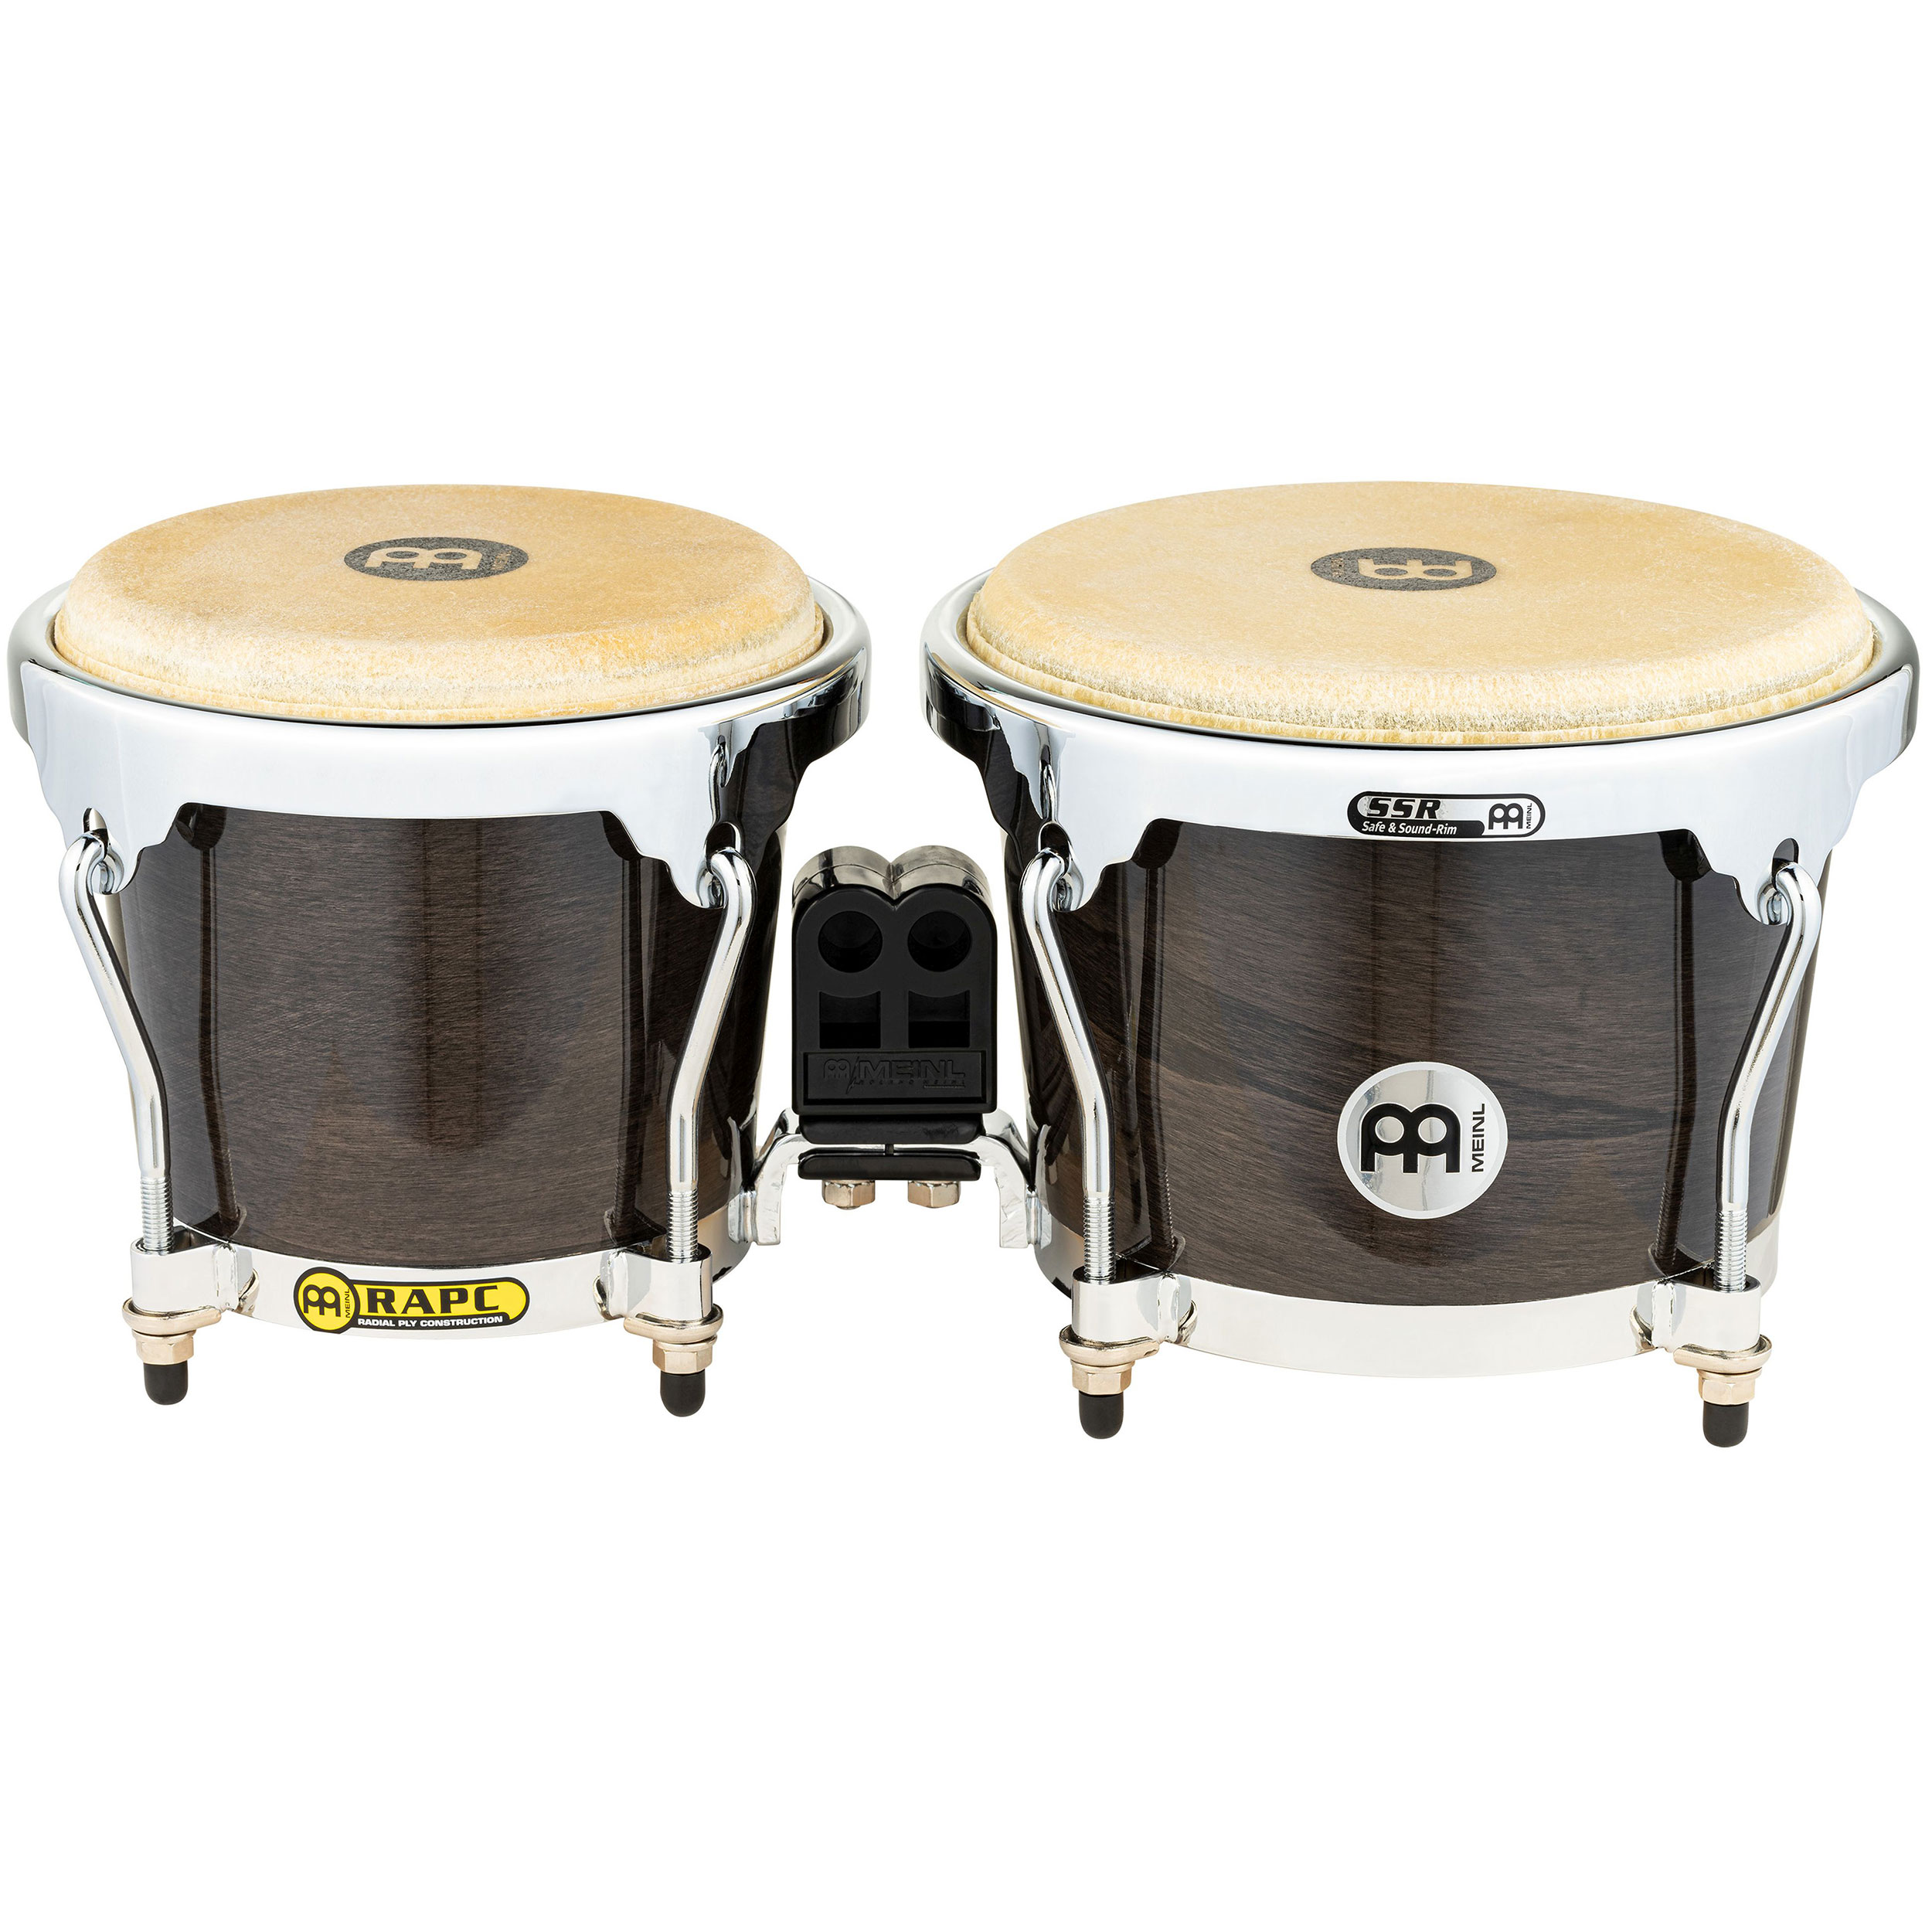 "Meinl 6.75"" & 8"" Radial 5-Ply Construction (RAPC) Wood Bongos in Ebony Black"